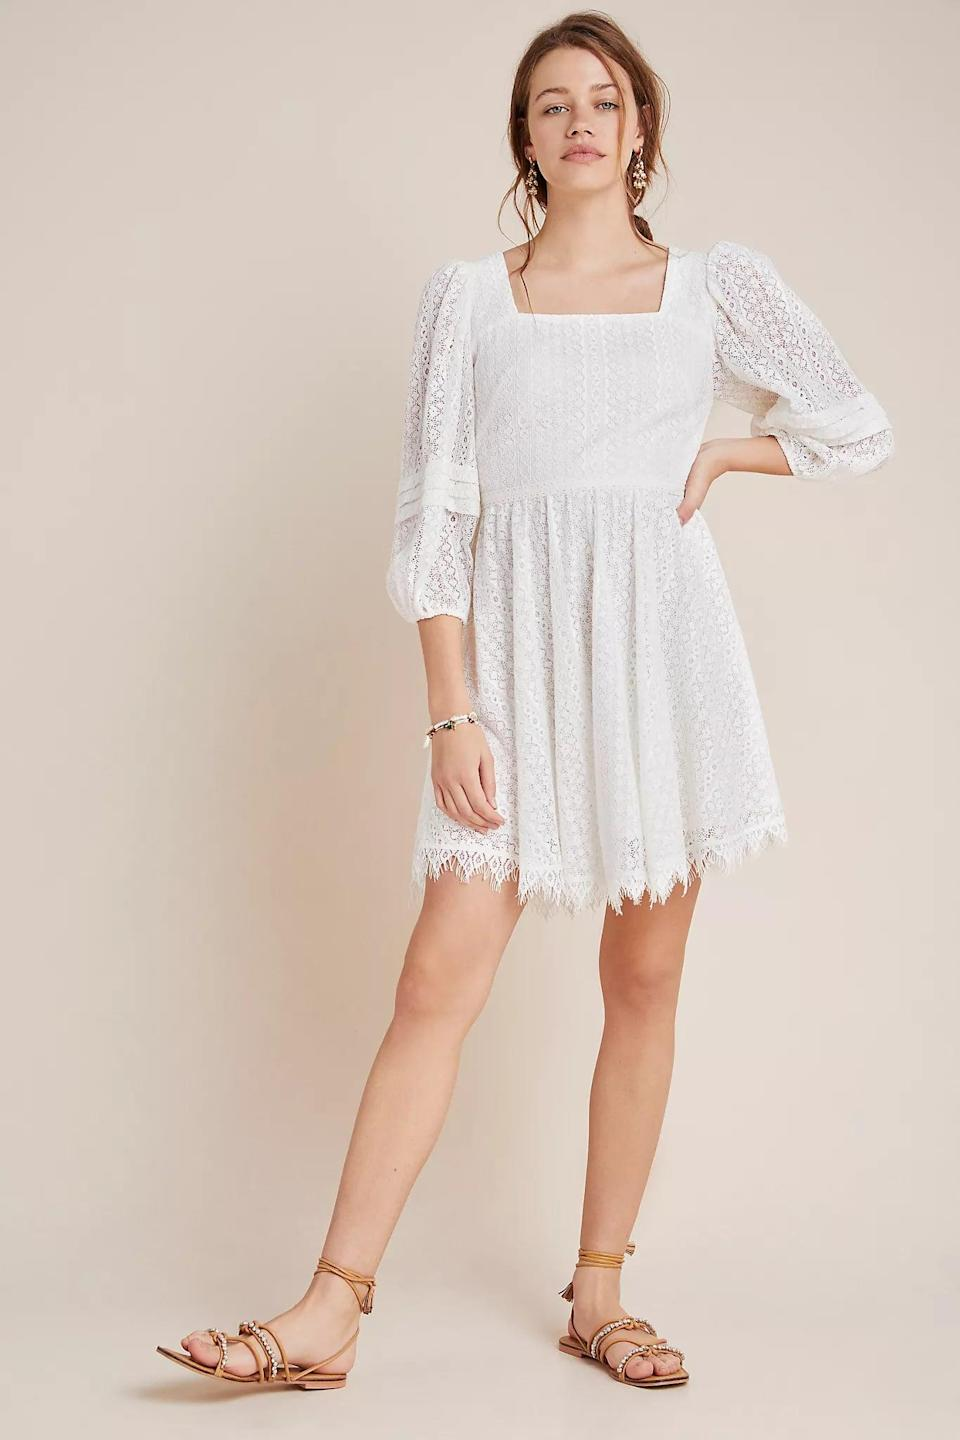 """<p>There are so many ways to style this <a href=""""https://www.popsugar.com/buy/Shoshanna-Vega-Lace-Mini-Dress-579971?p_name=Shoshanna%20Vega%20Lace%20Mini%20Dress&retailer=anthropologie.com&pid=579971&price=318&evar1=fab%3Aus&evar9=33517892&evar98=https%3A%2F%2Fwww.popsugar.com%2Ffashion%2Fphoto-gallery%2F33517892%2Fimage%2F47532442%2FShoshanna-Vega-Lace-Mini-Dress&list1=shopping%2Csummer%2Clace%2Csummer%20fashion&prop13=api&pdata=1"""" class=""""link rapid-noclick-resp"""" rel=""""nofollow noopener"""" target=""""_blank"""" data-ylk=""""slk:Shoshanna Vega Lace Mini Dress"""">Shoshanna Vega Lace Mini Dress</a> ($318, originally $398).</p>"""